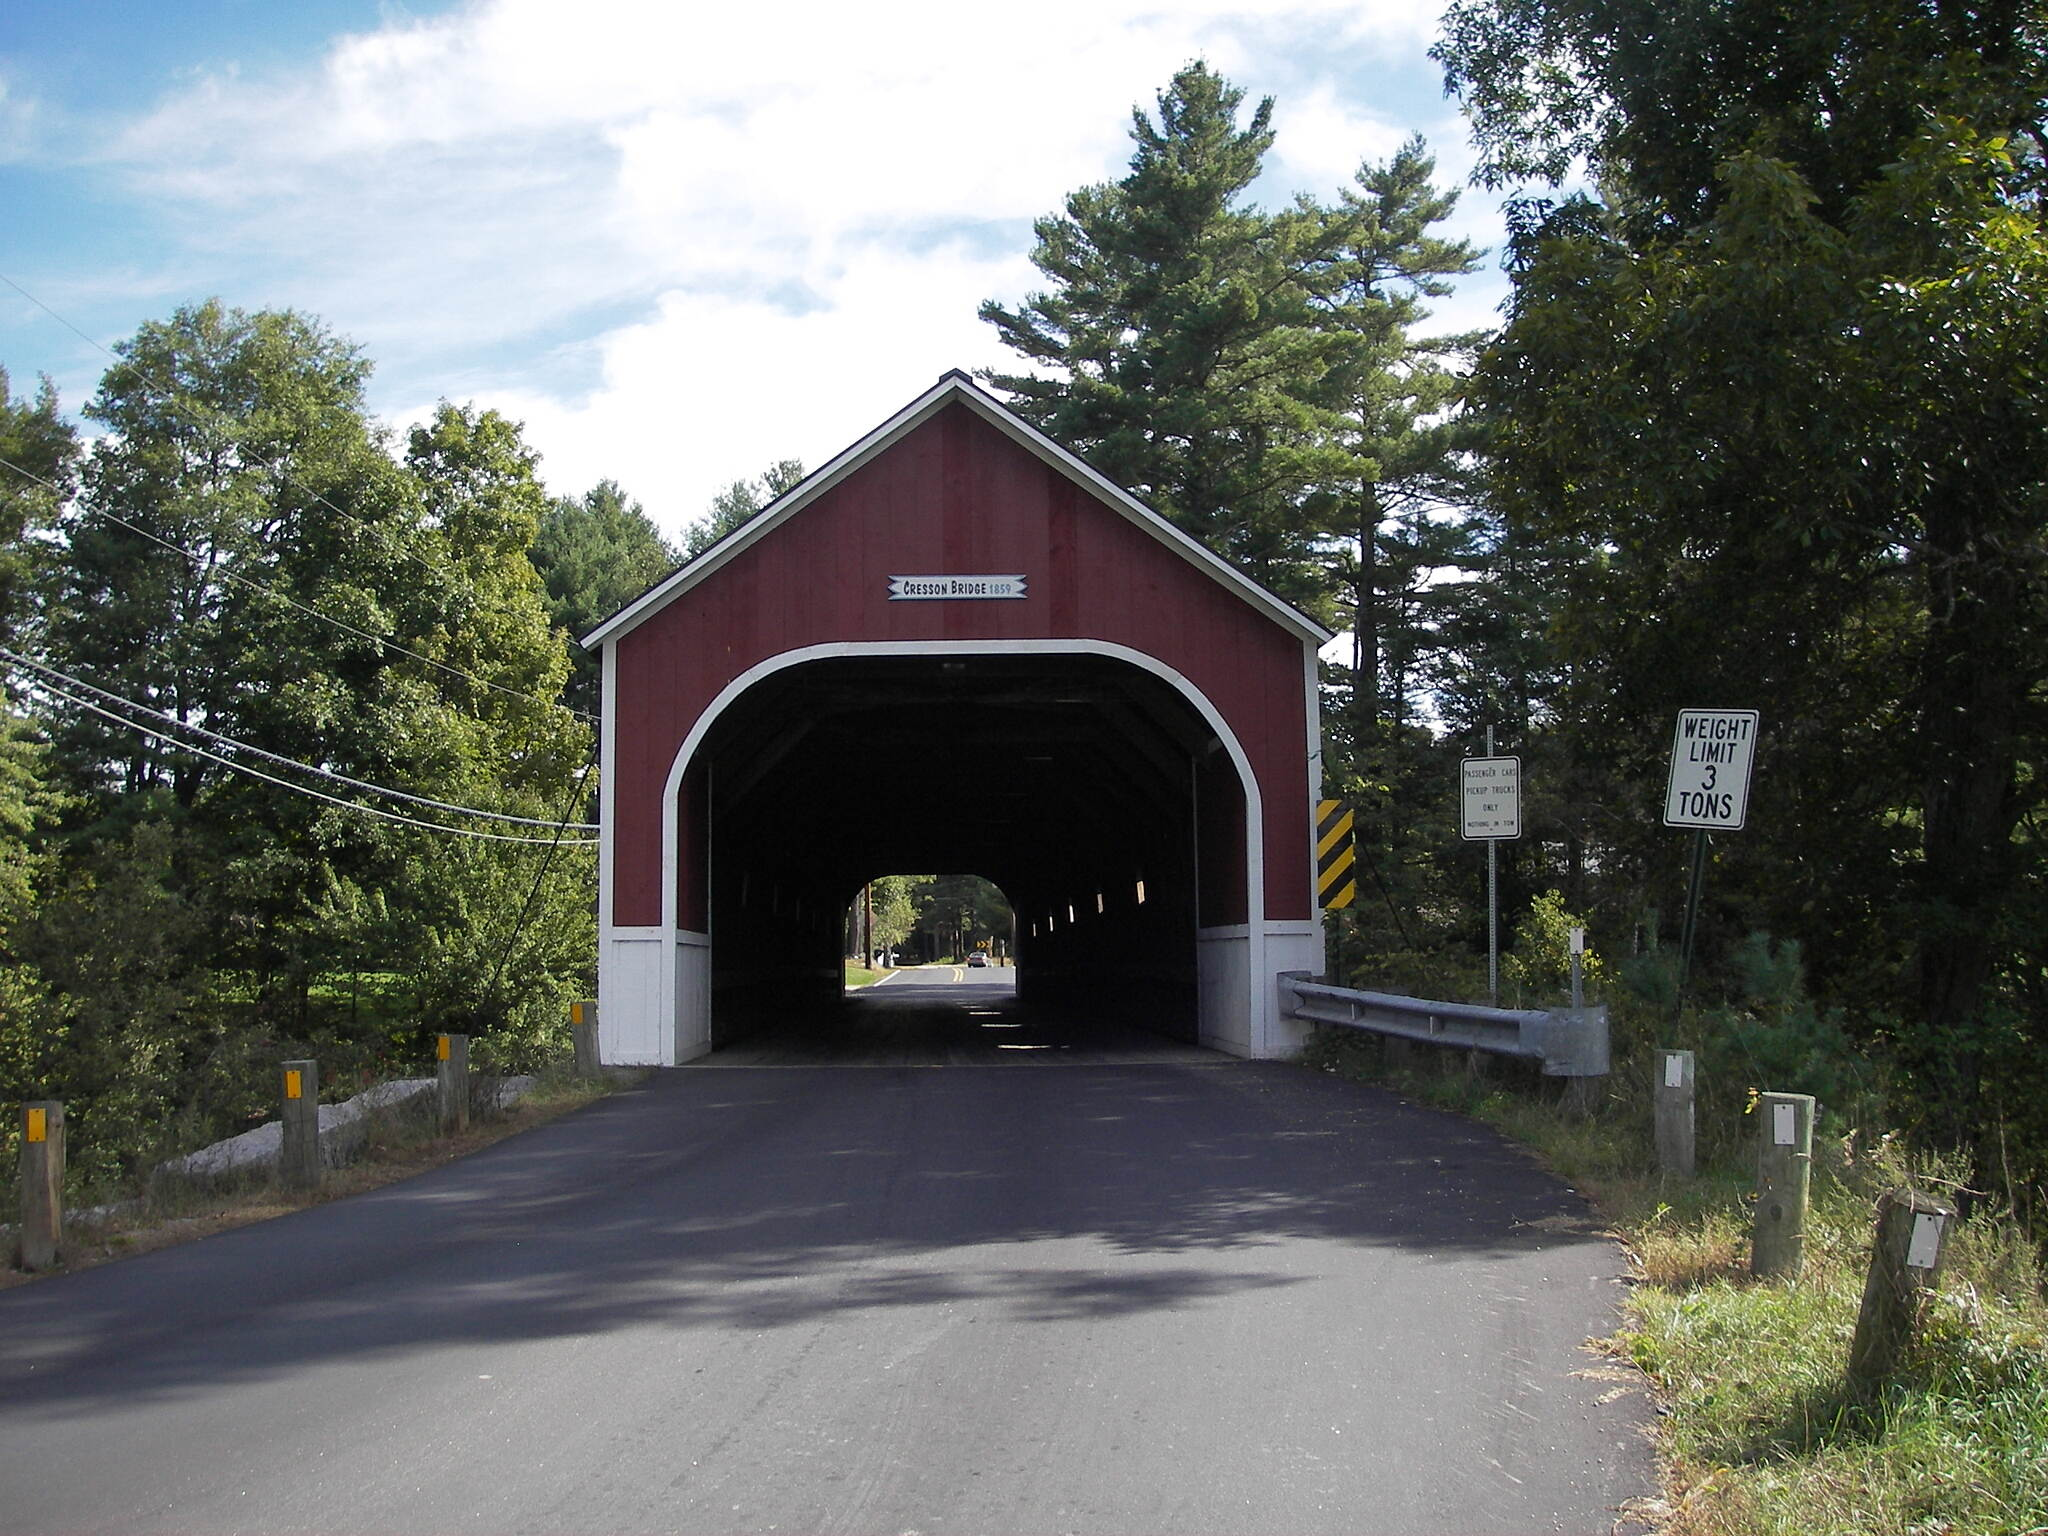 Ashuelot Rail Trail another covered bridge near trail This bridge is part of a loop on roads that include at least 6 bridges.